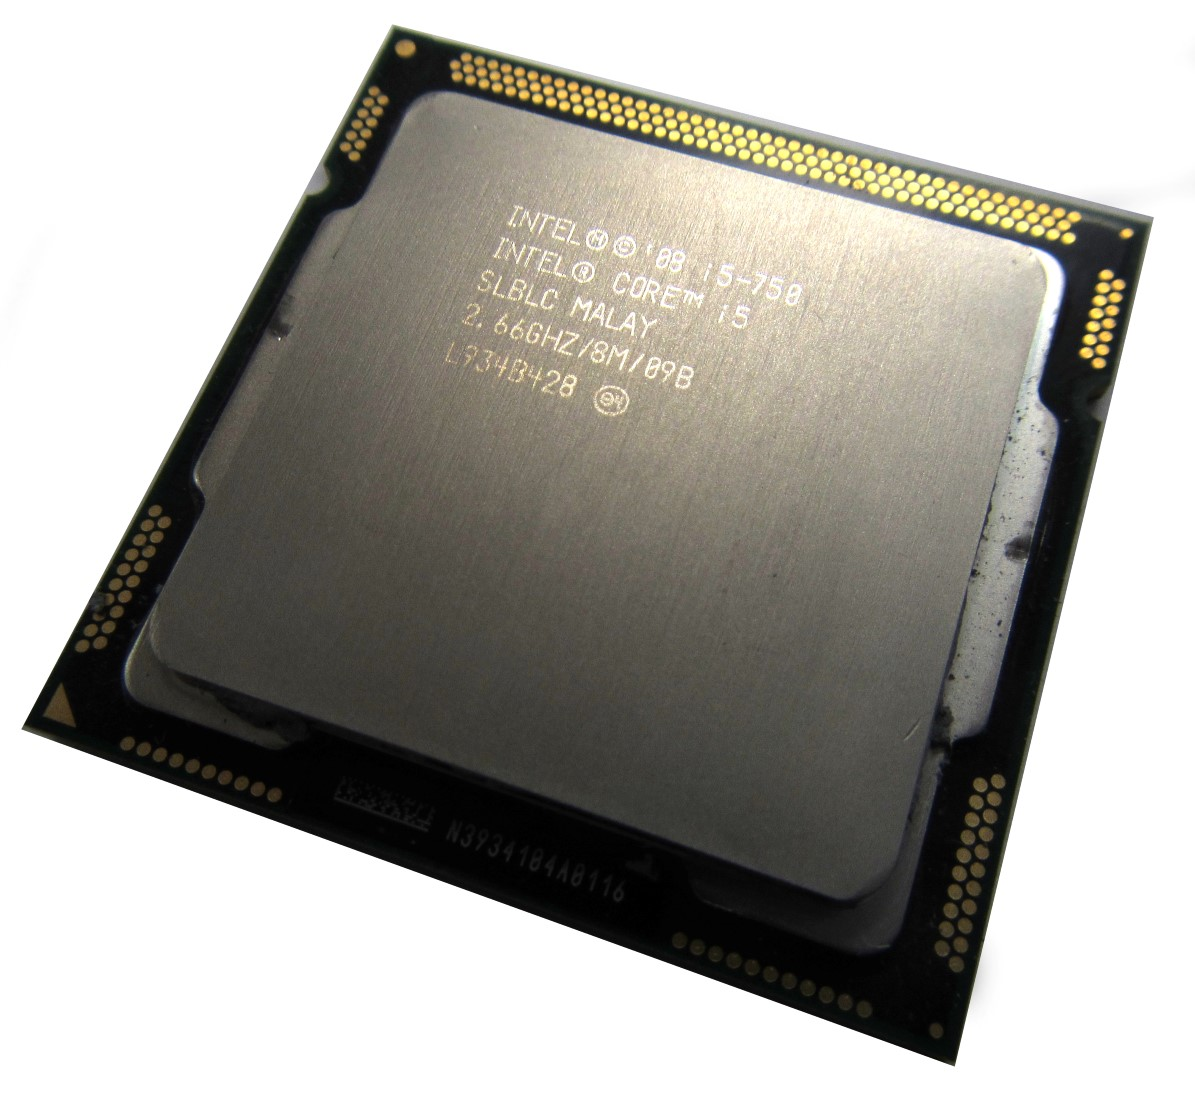 slblc intel core i5 750 processor 8m cache ghz lga1156 ebay. Black Bedroom Furniture Sets. Home Design Ideas